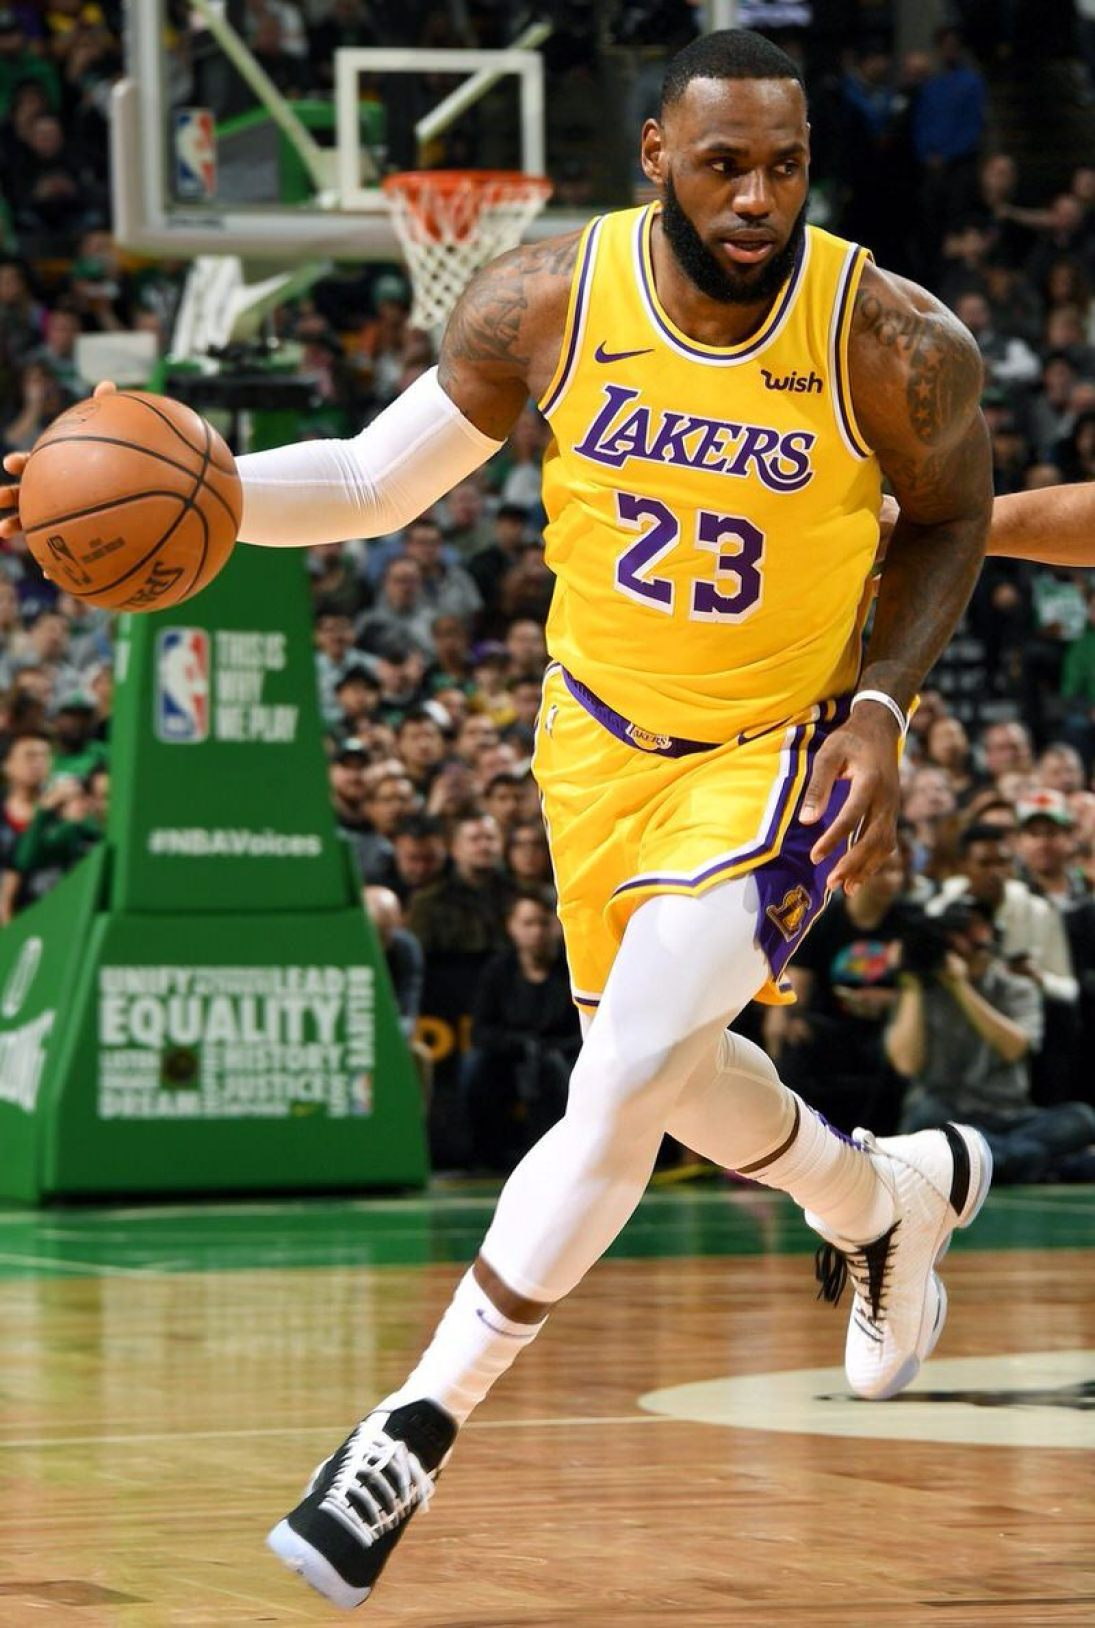 """358aeec9796d8 LeBron James in the Nike LeBron 16 """"Equality"""" vs. Boston Celtics (Andrew D.  Bernstein NBAE via Getty Images)"""